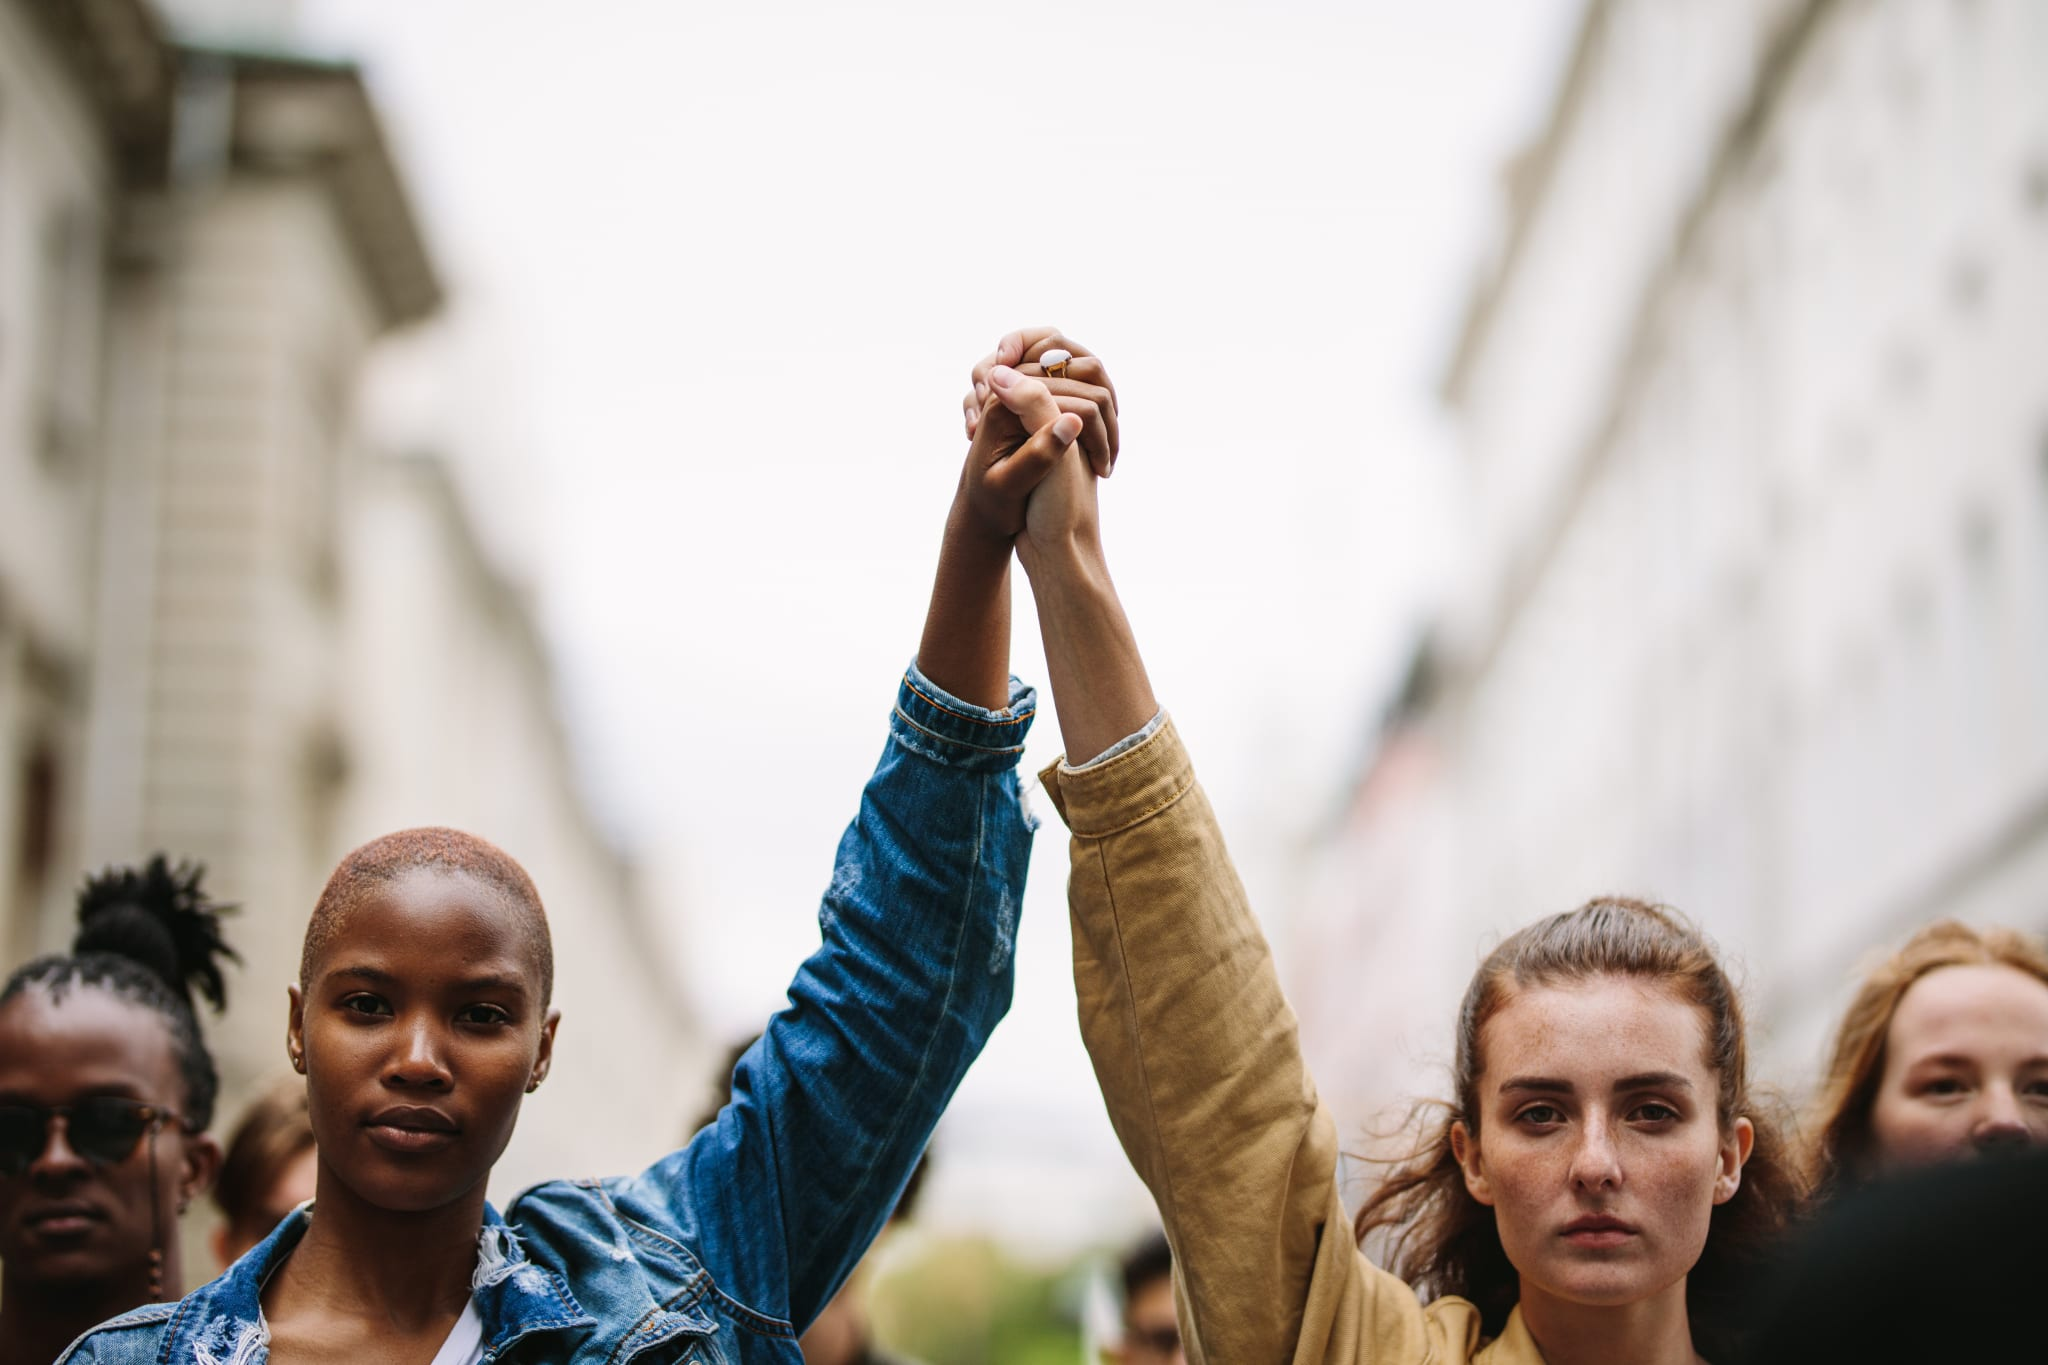 Image of a black woman holding hands with a white woman with their arms raised in the air.